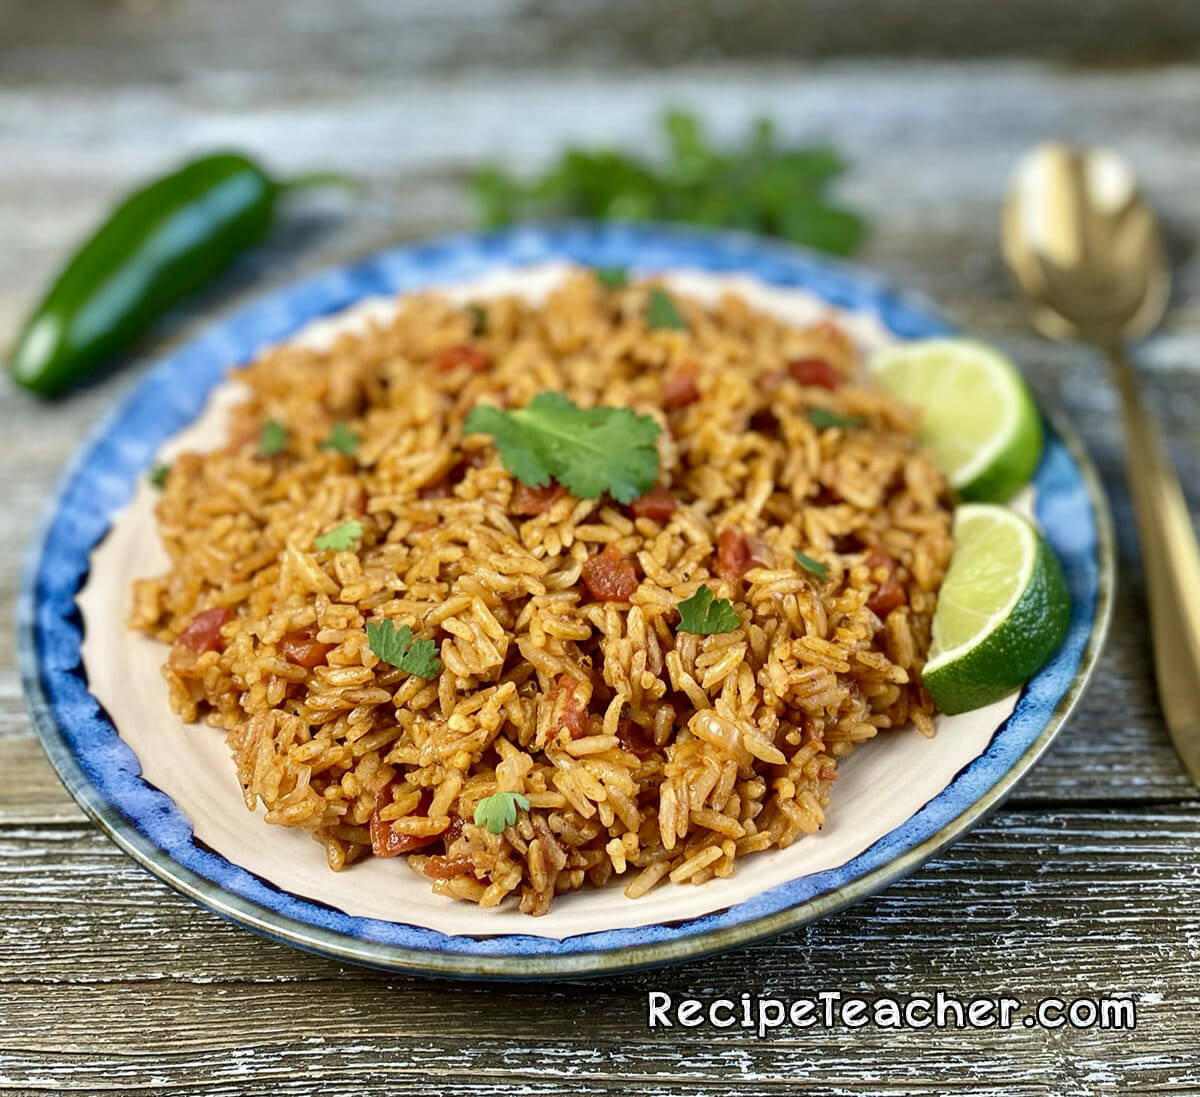 A plate of Instant Pot Spanish rice.